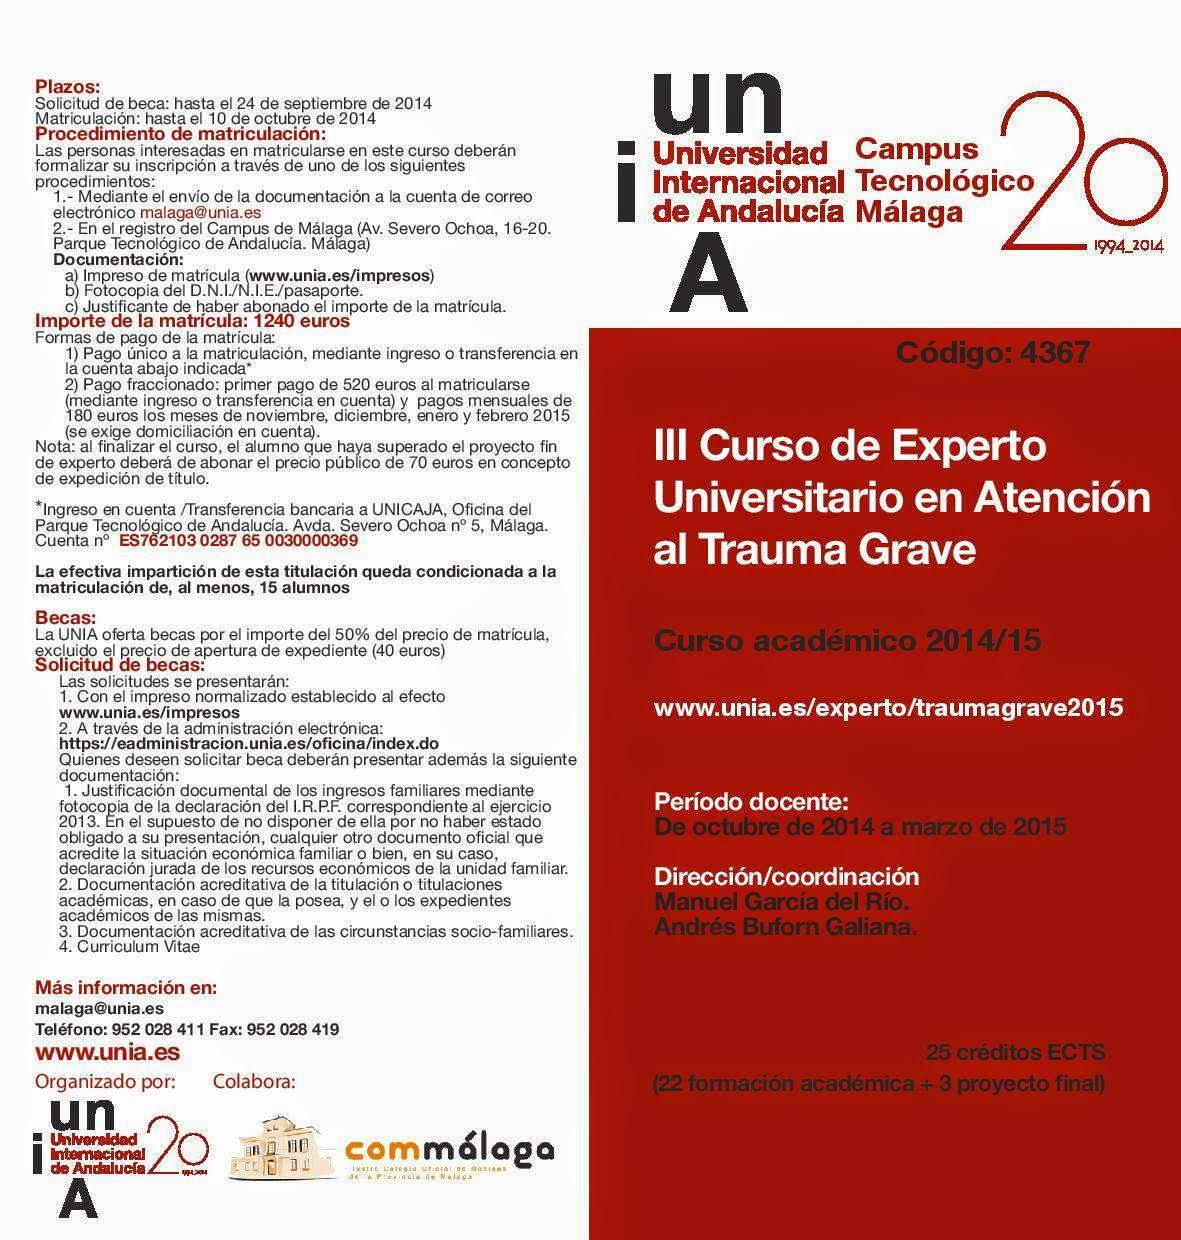 http://www.unia.es/images/stories/sede_malaga/CURSO%20ACADEMICO%202014-15/FOLLETOS/4367_trauma_grave.pdf